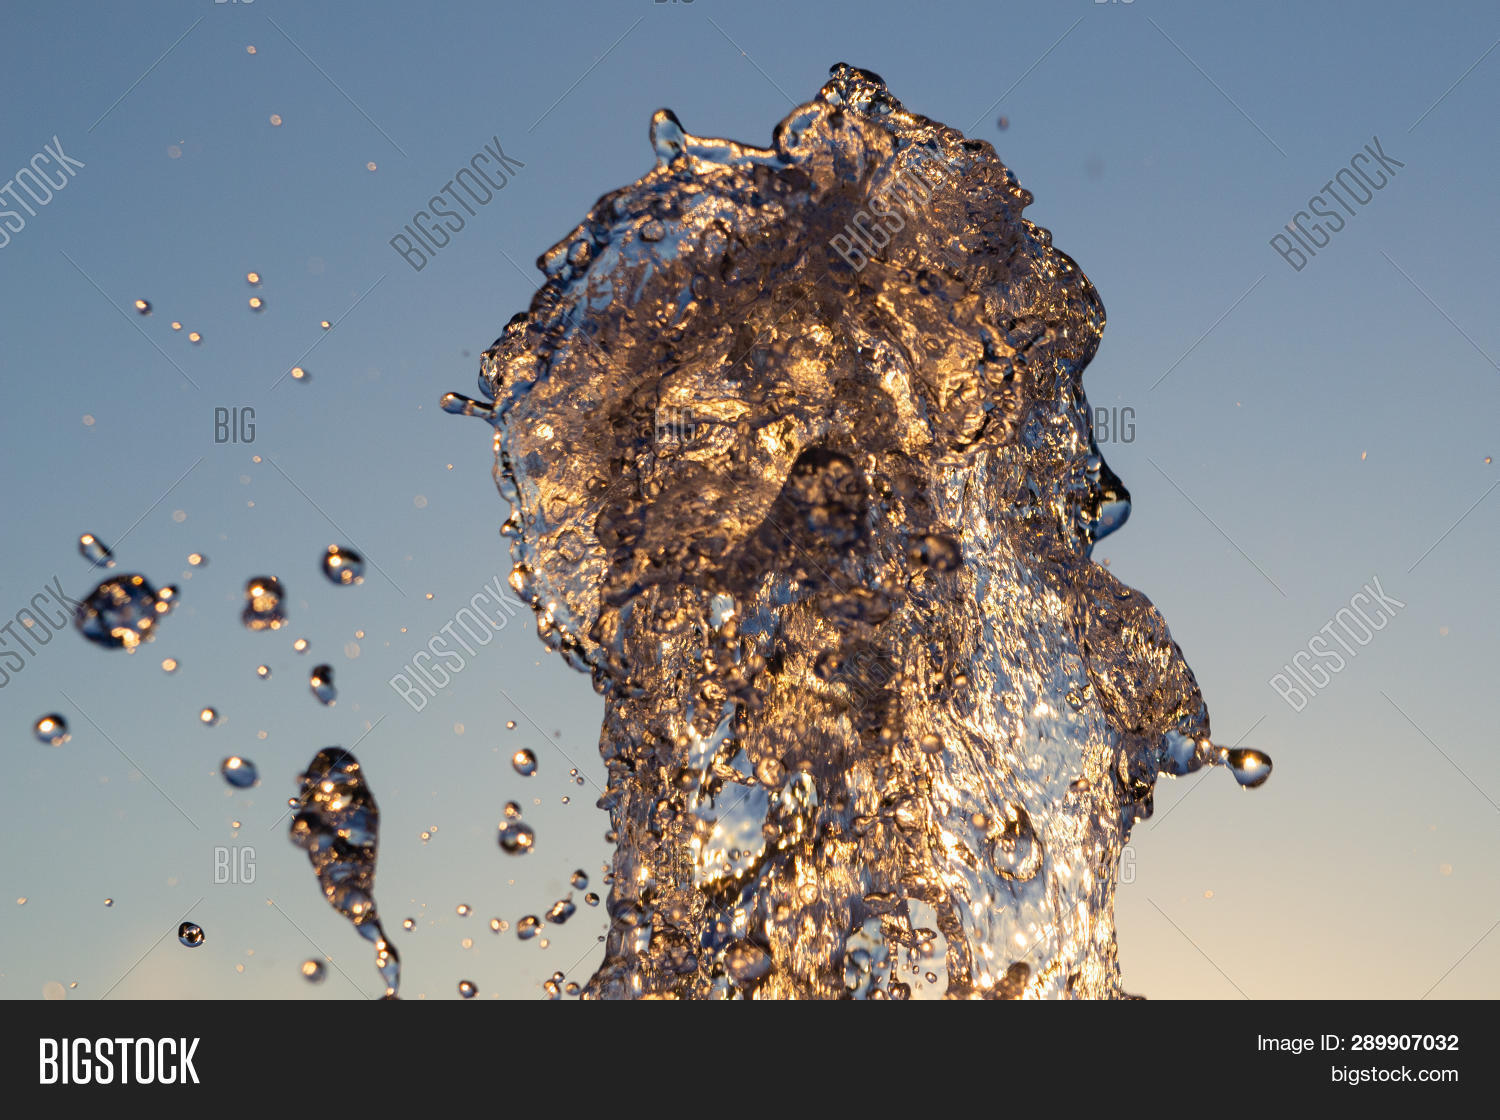 Сloseup Jet Water Image & Photo (Free Trial) | Bigstock